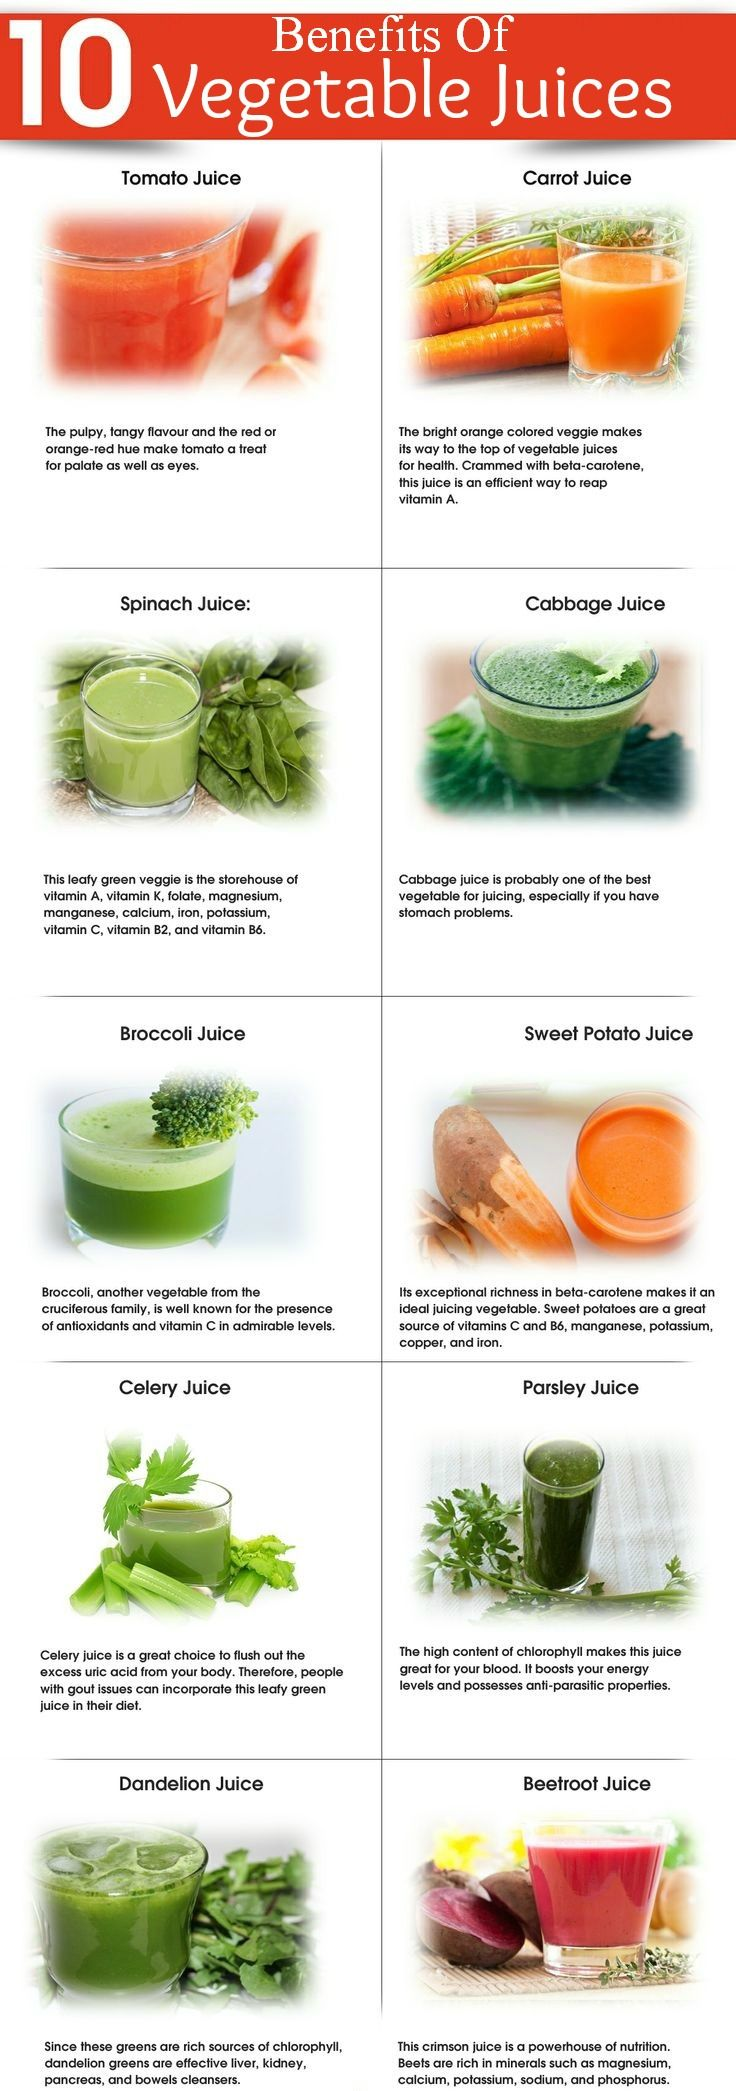 10 amazing benefits of drinking vegetable juices for health